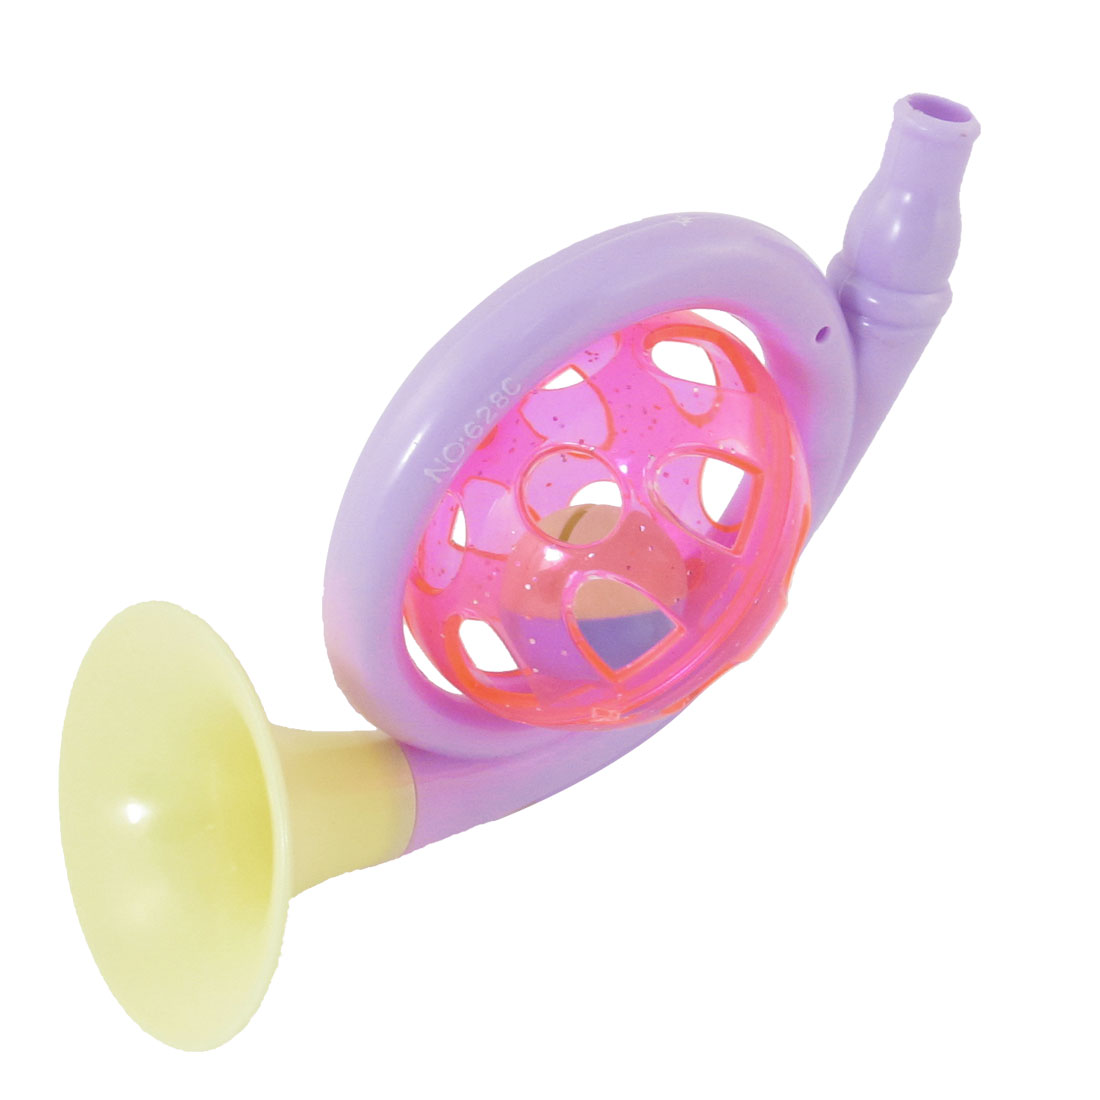 Hand Shaking Horn Shaped Shakers Rattle Trumpet Toy Purple Yellow Pink for Baby